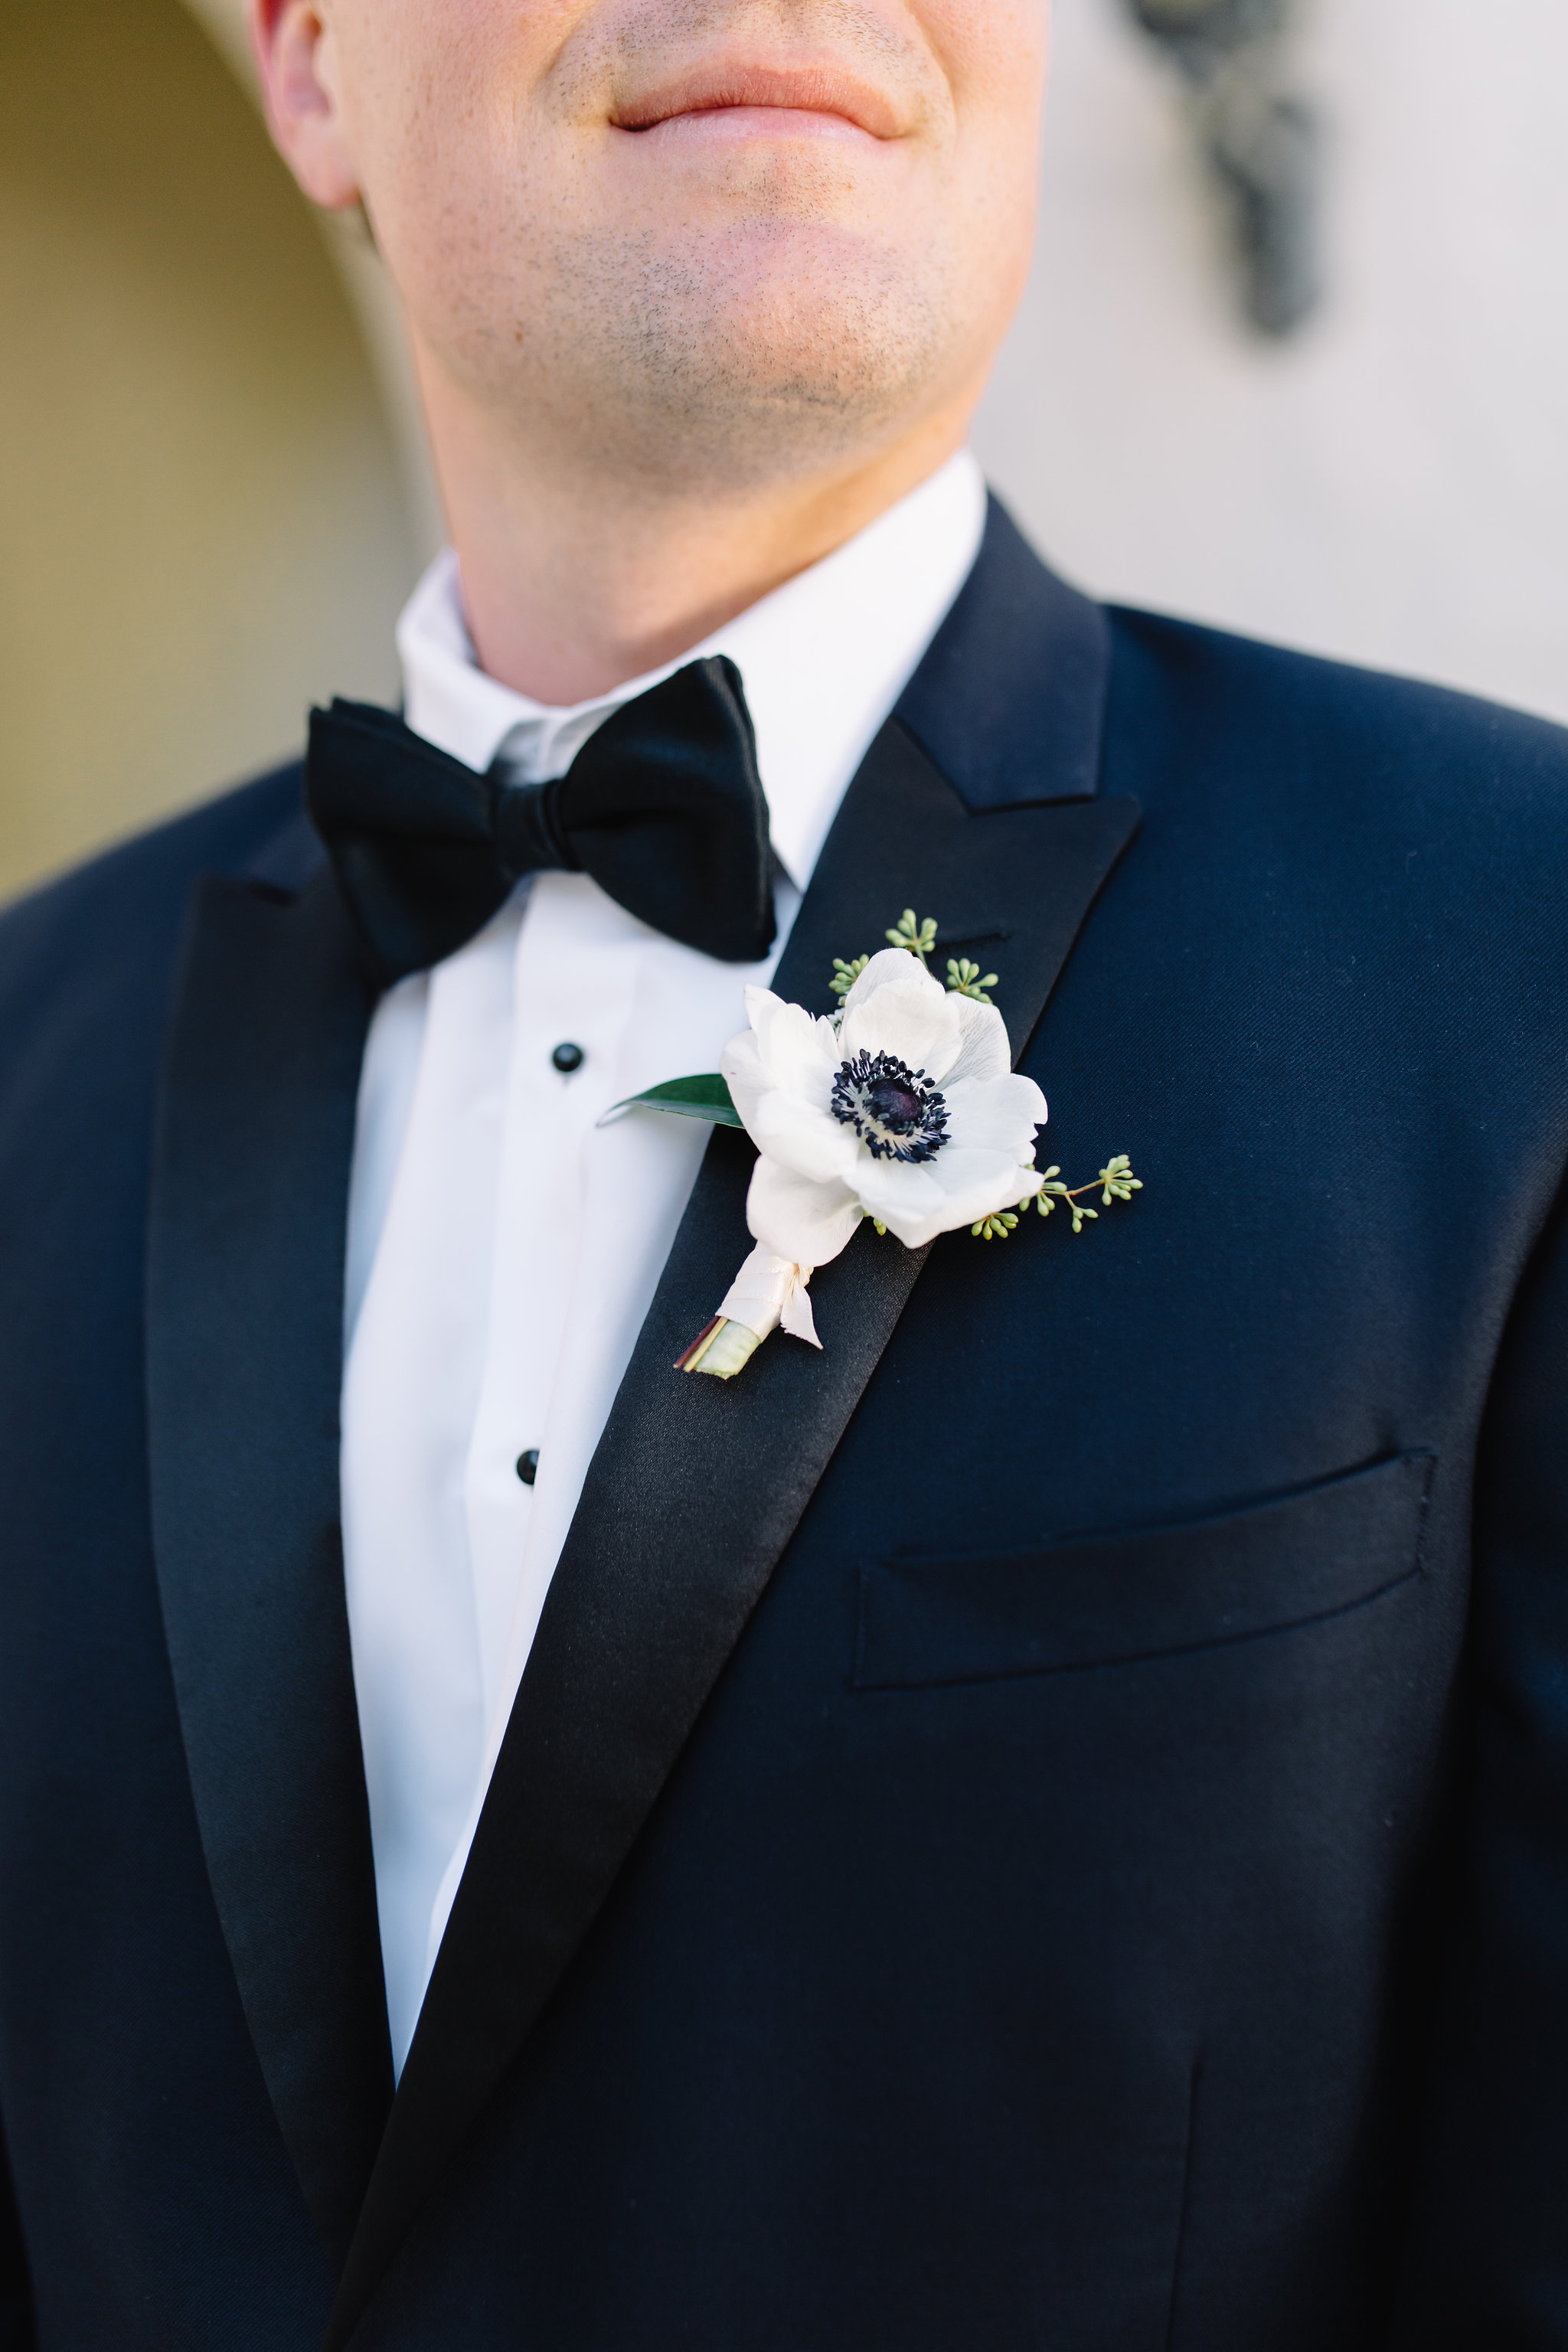 Anoime boutonniere for the groom